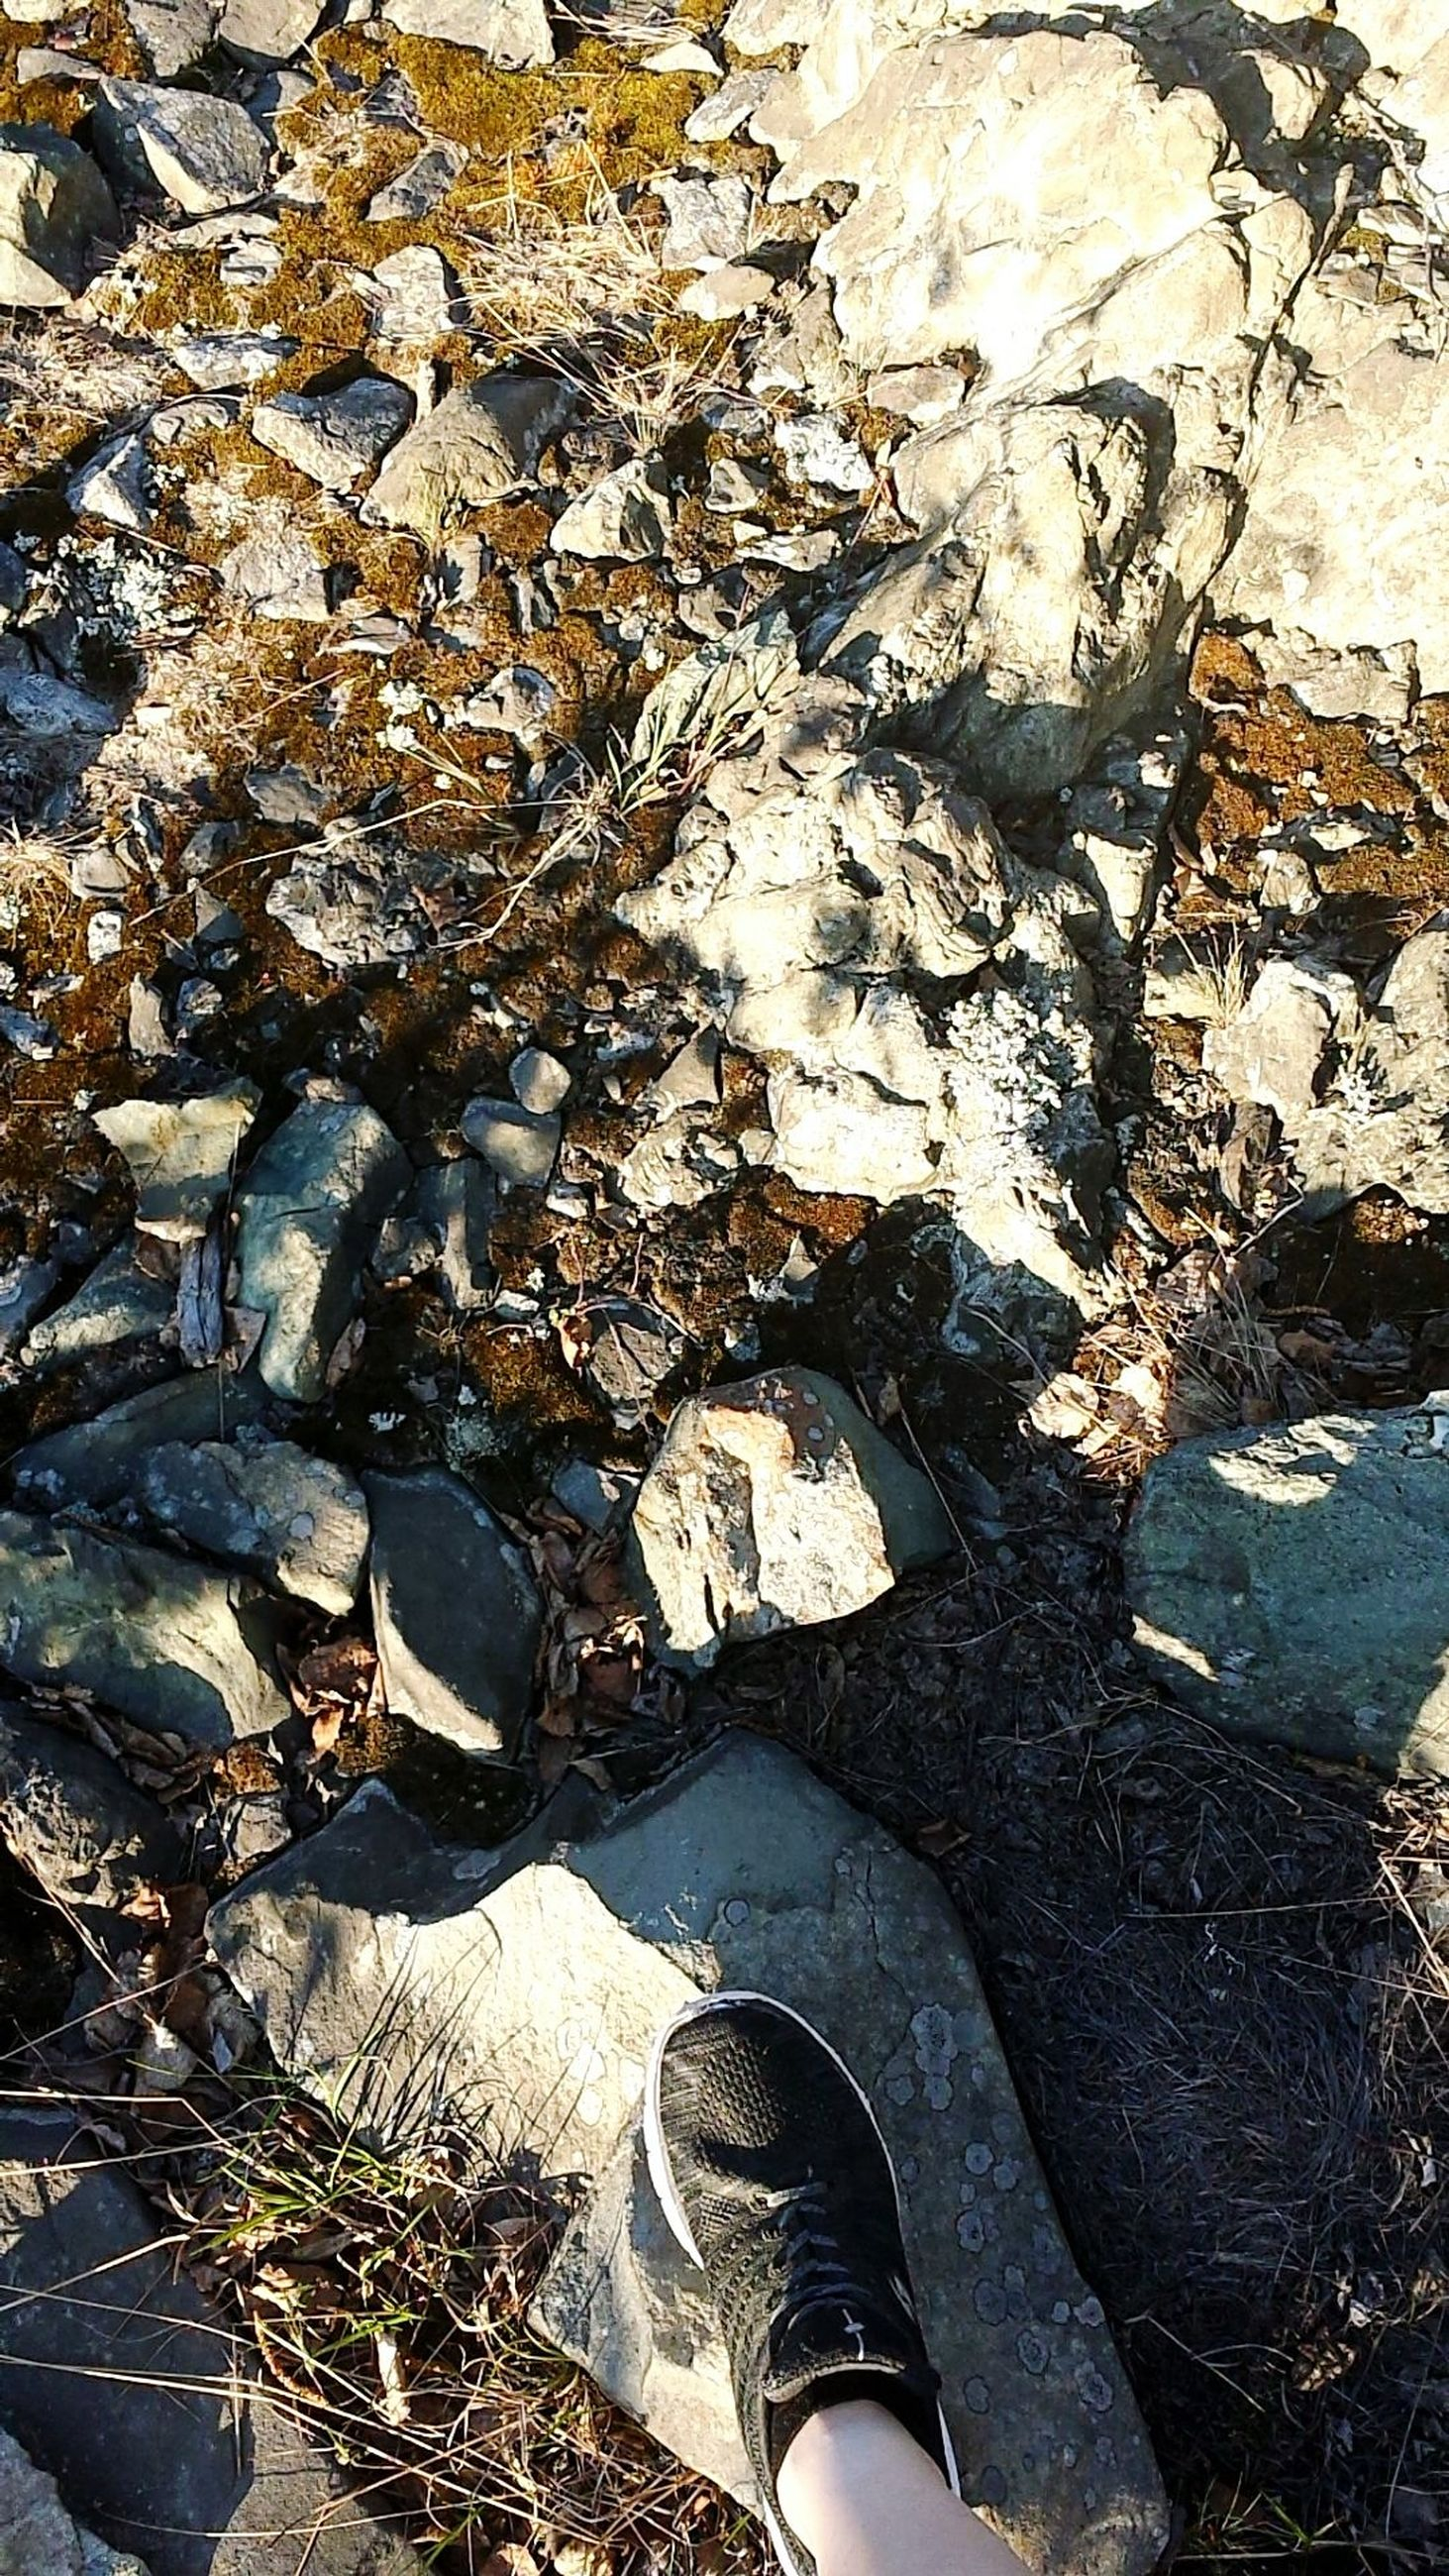 low section, high angle view, human leg, day, shoe, rock, nature, land, real people, solid, body part, human body part, one person, standing, water, rock - object, sunlight, unrecognizable person, personal perspective, outdoors, change, leaves, shallow